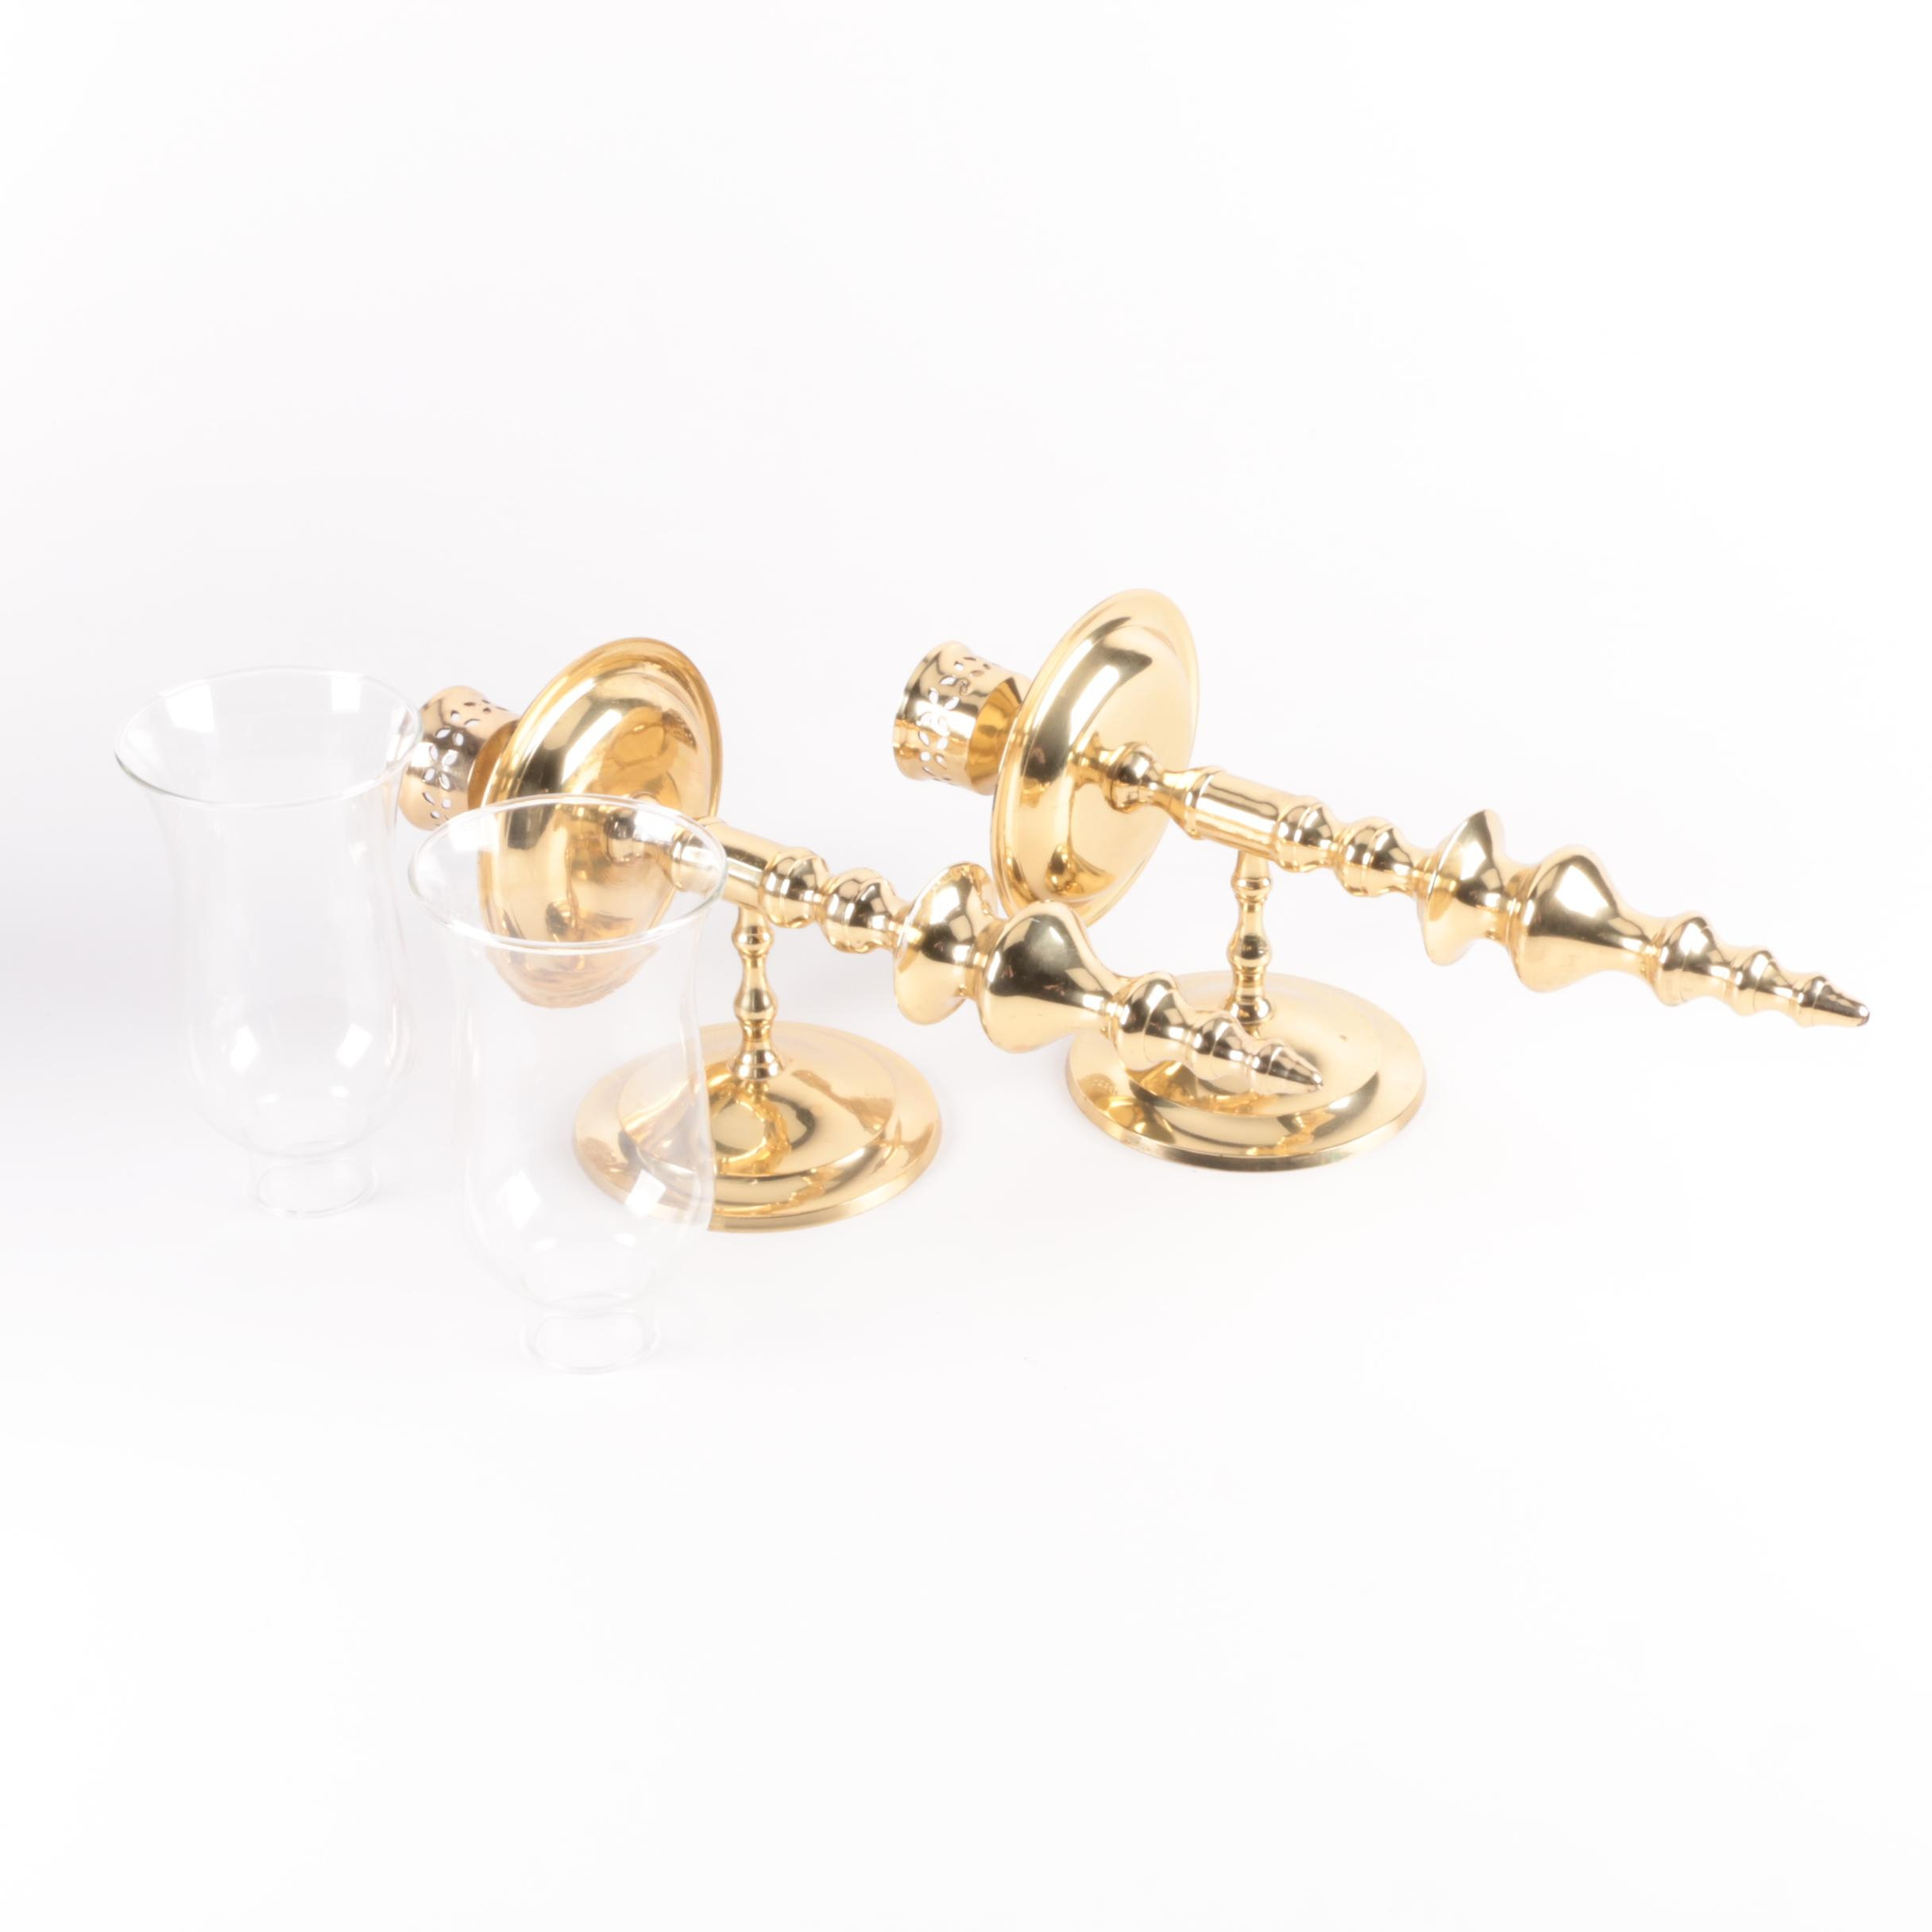 Brass Candle Wall Sconces